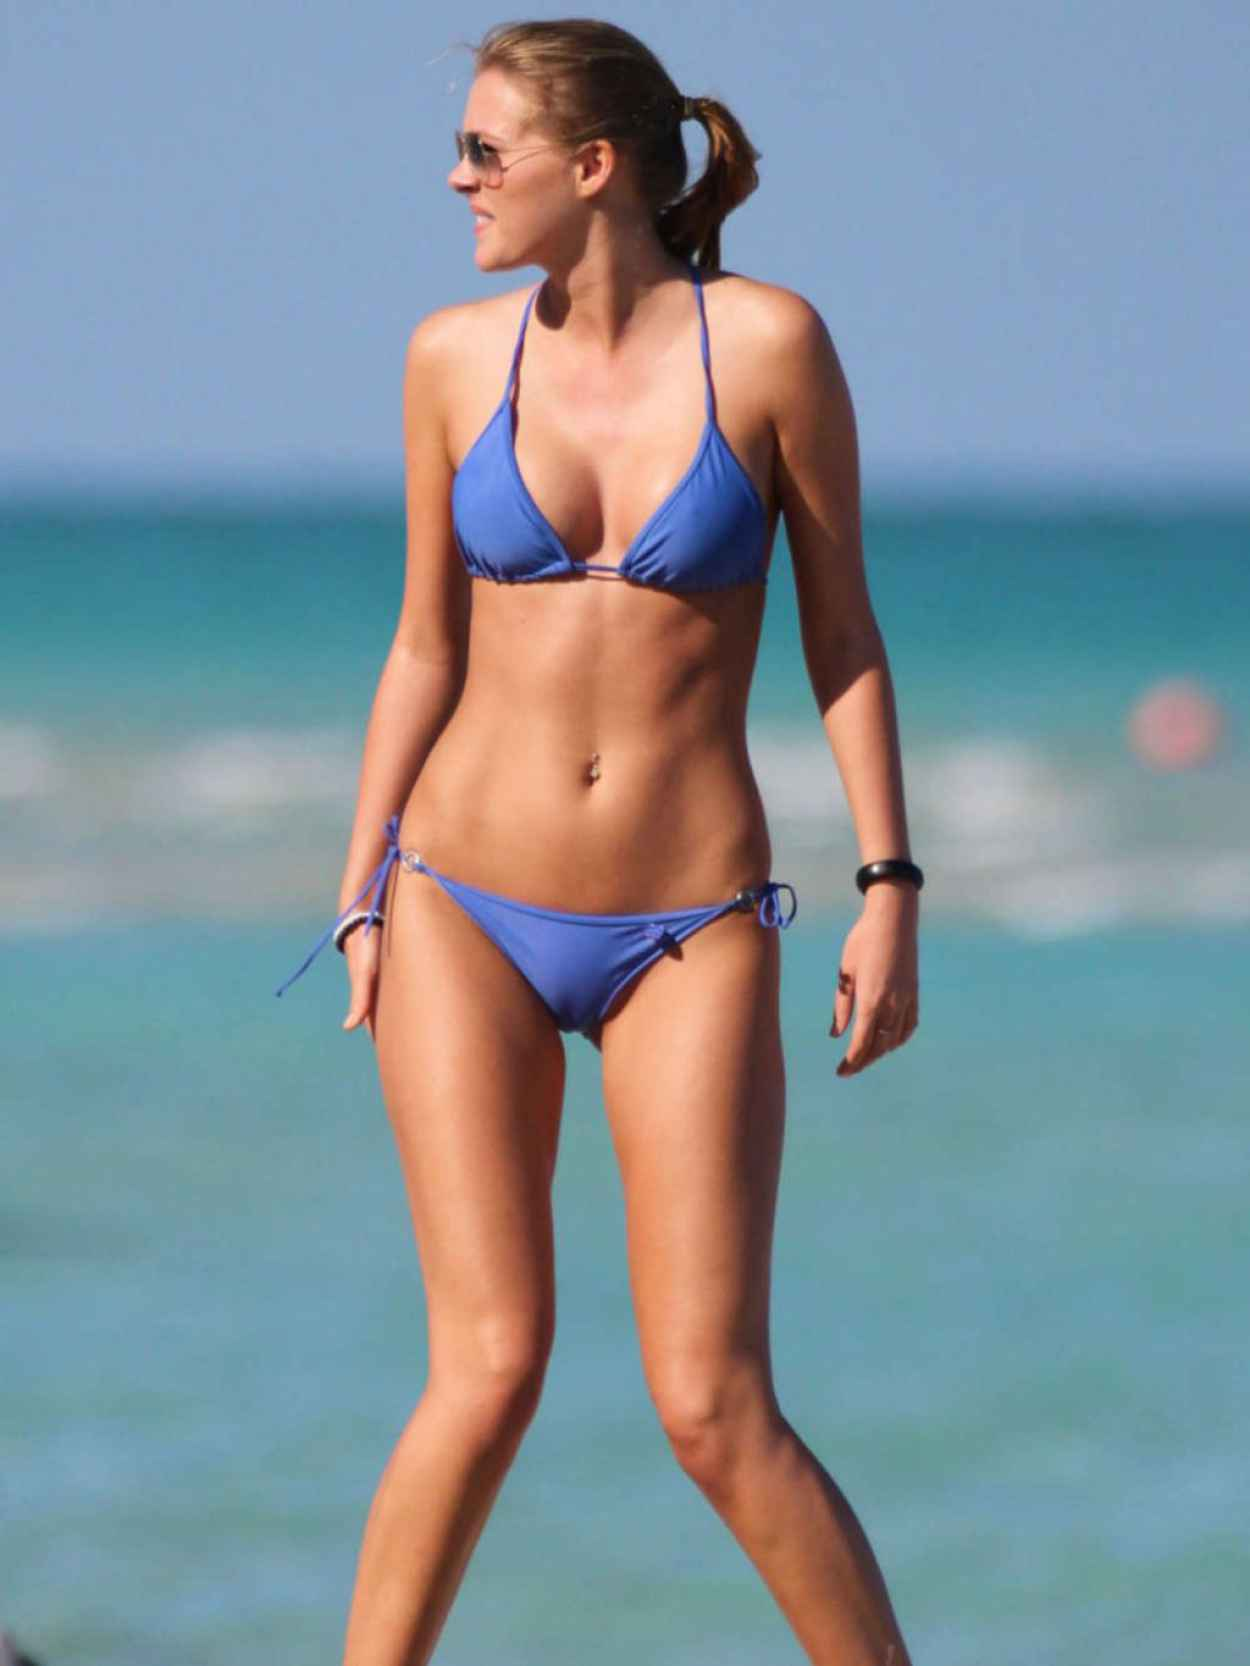 Deimante Guobyte In Blue Bikini Miami March 2015 on oscar schmidt website